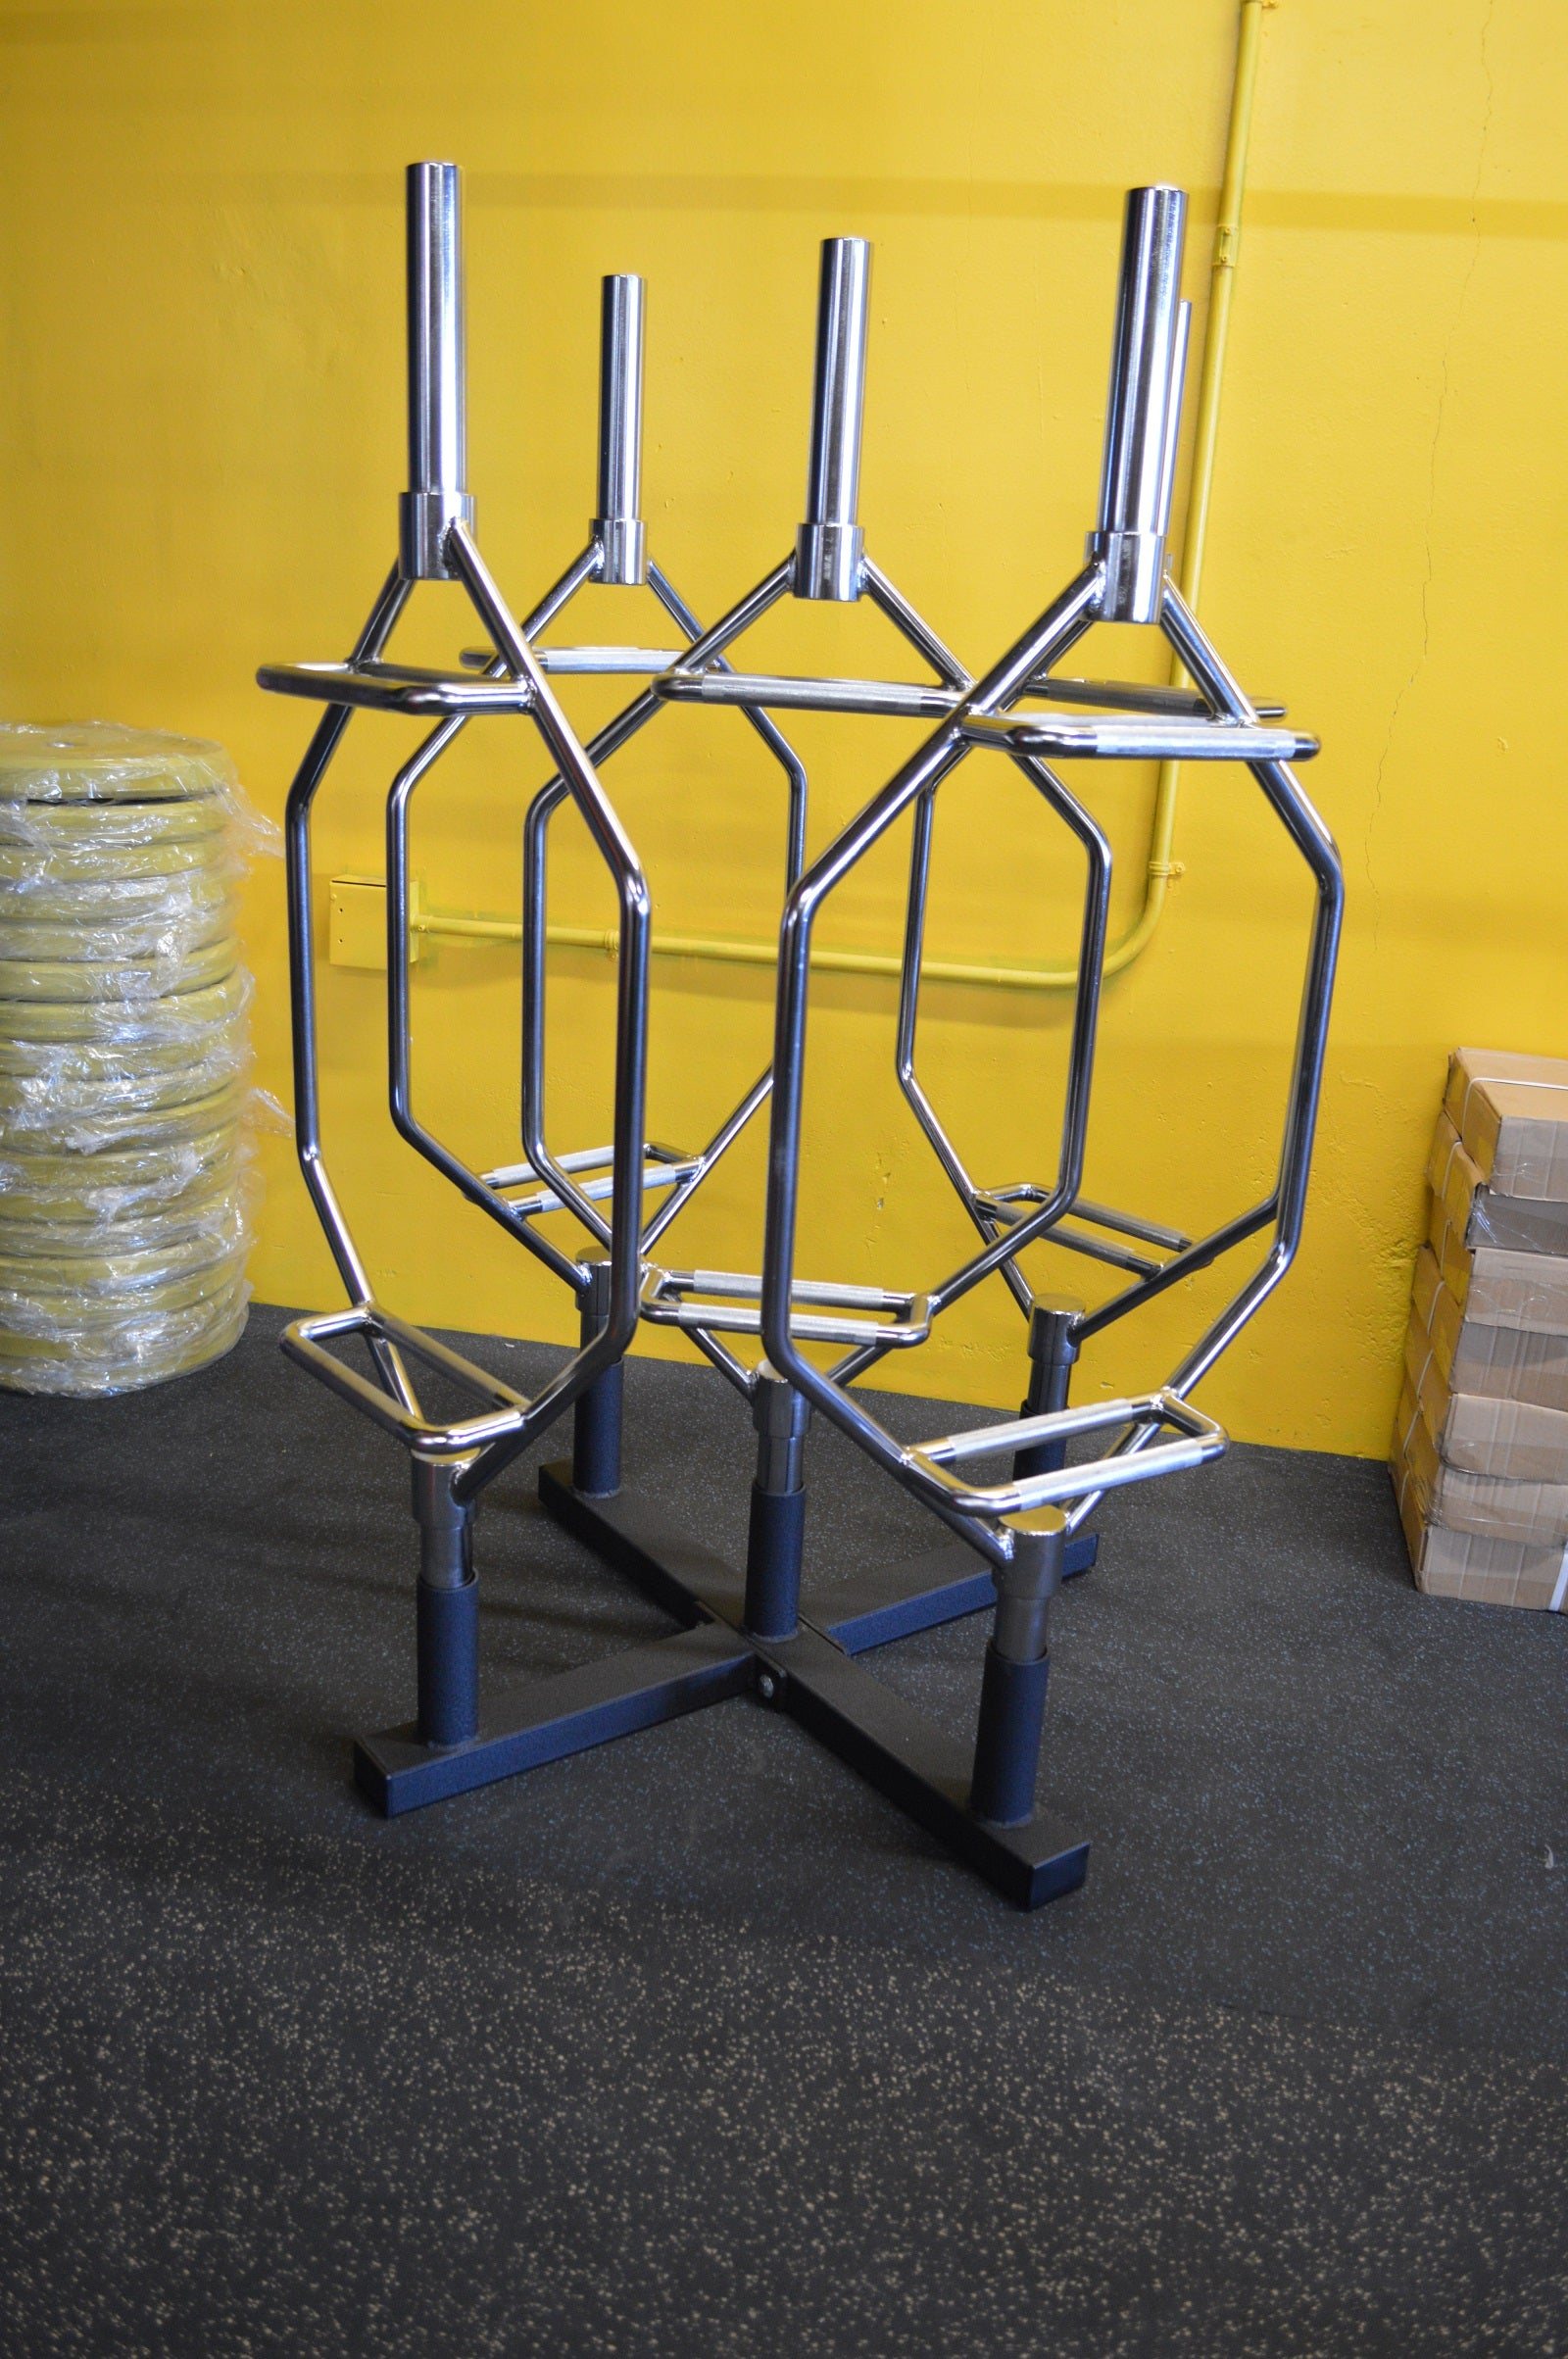 5 Hex Bar Holder - USA Made